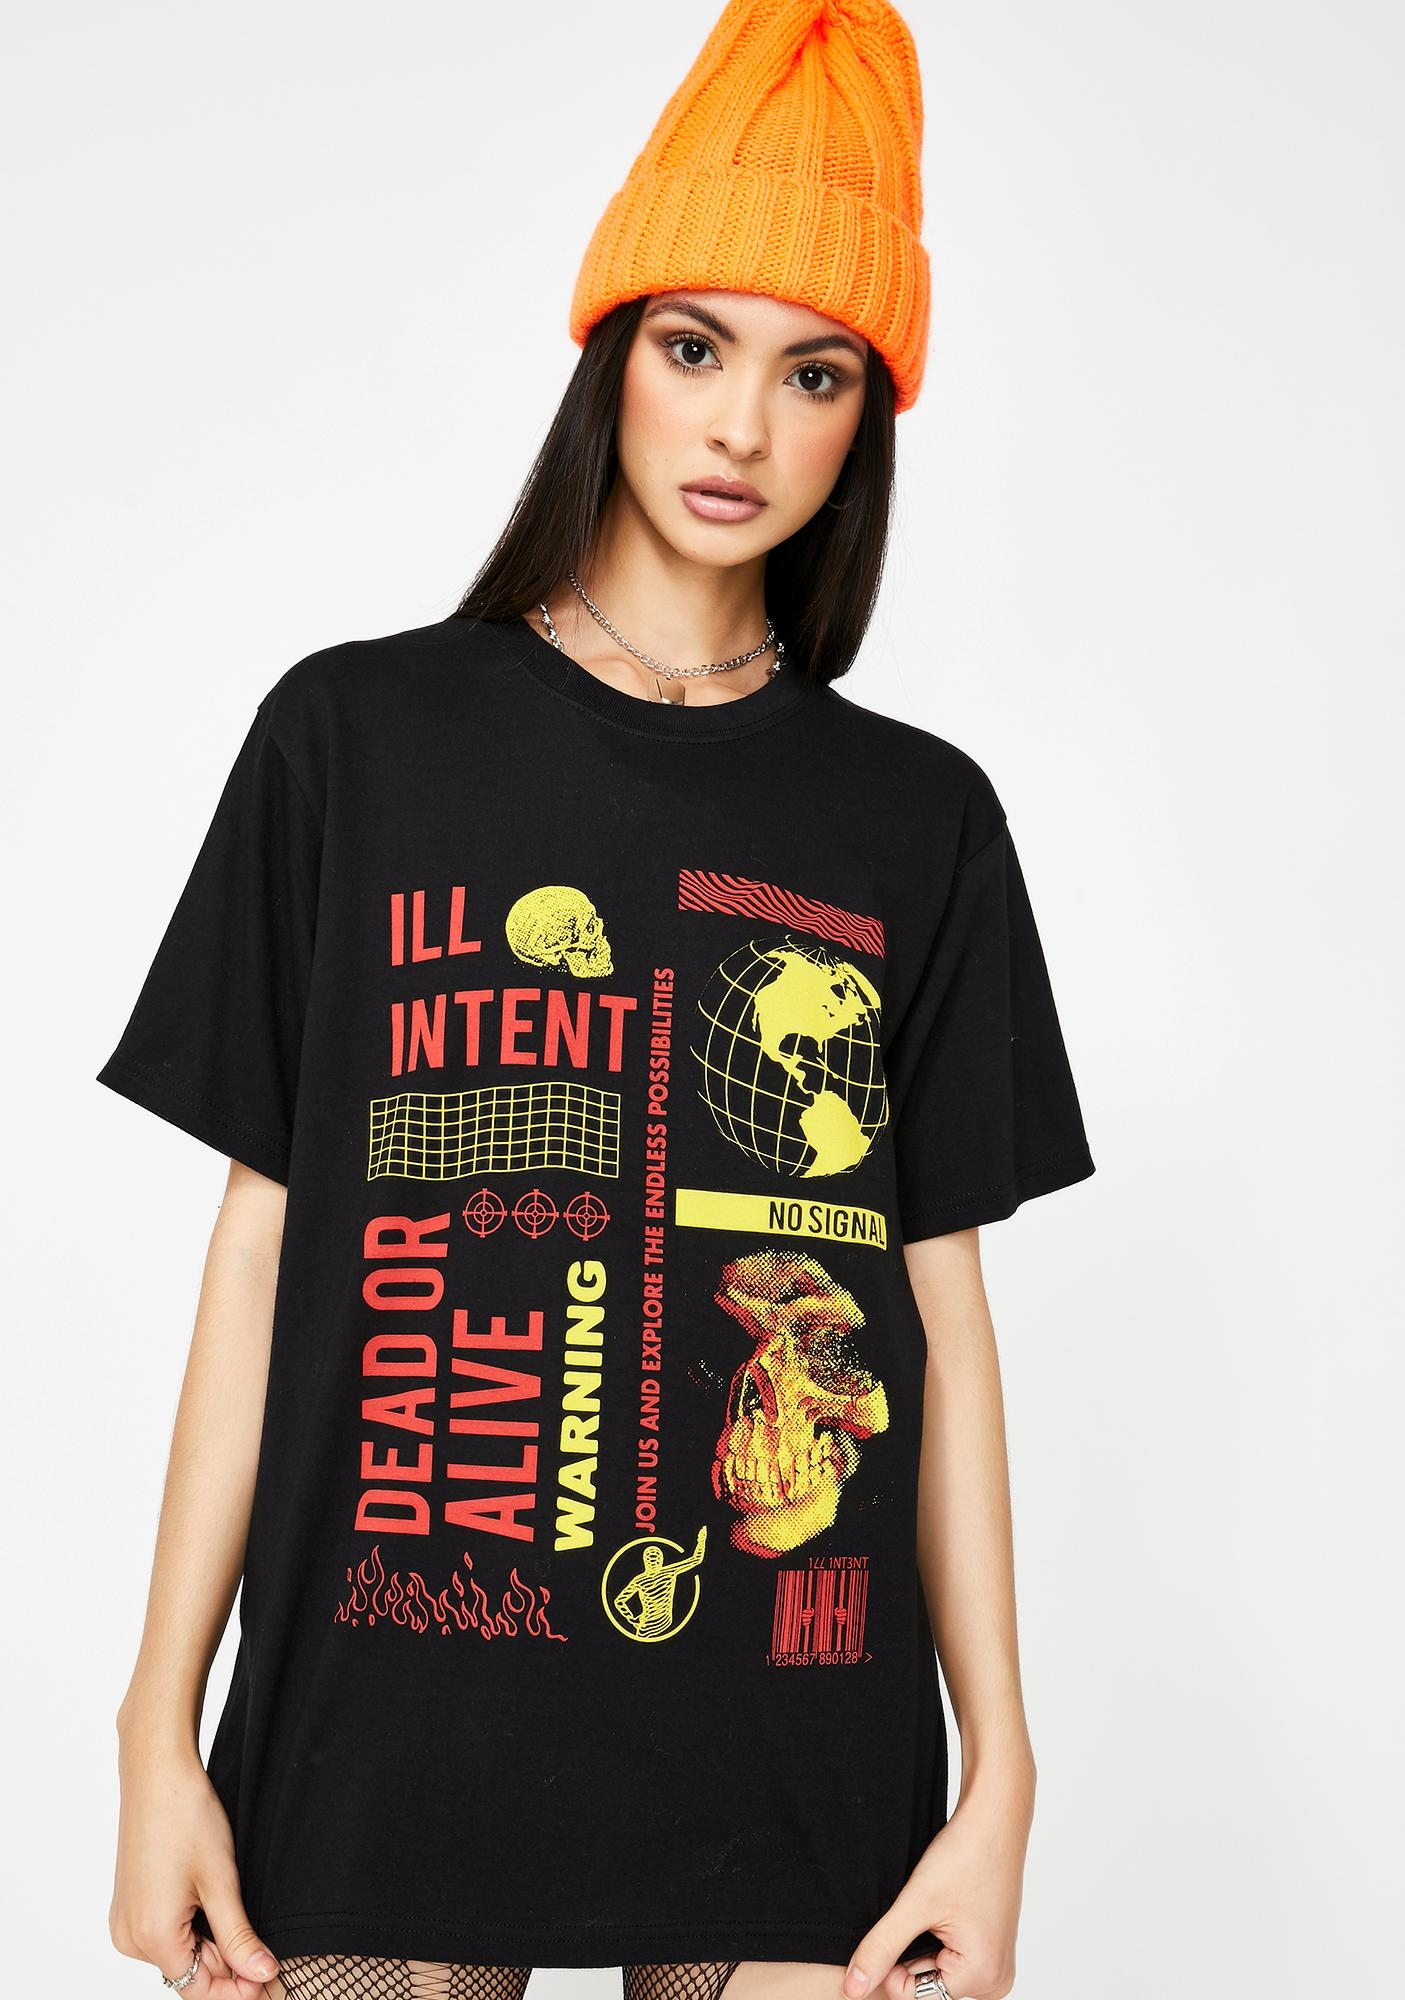 ILL INTENT Dead Or Alive Graphic Tee